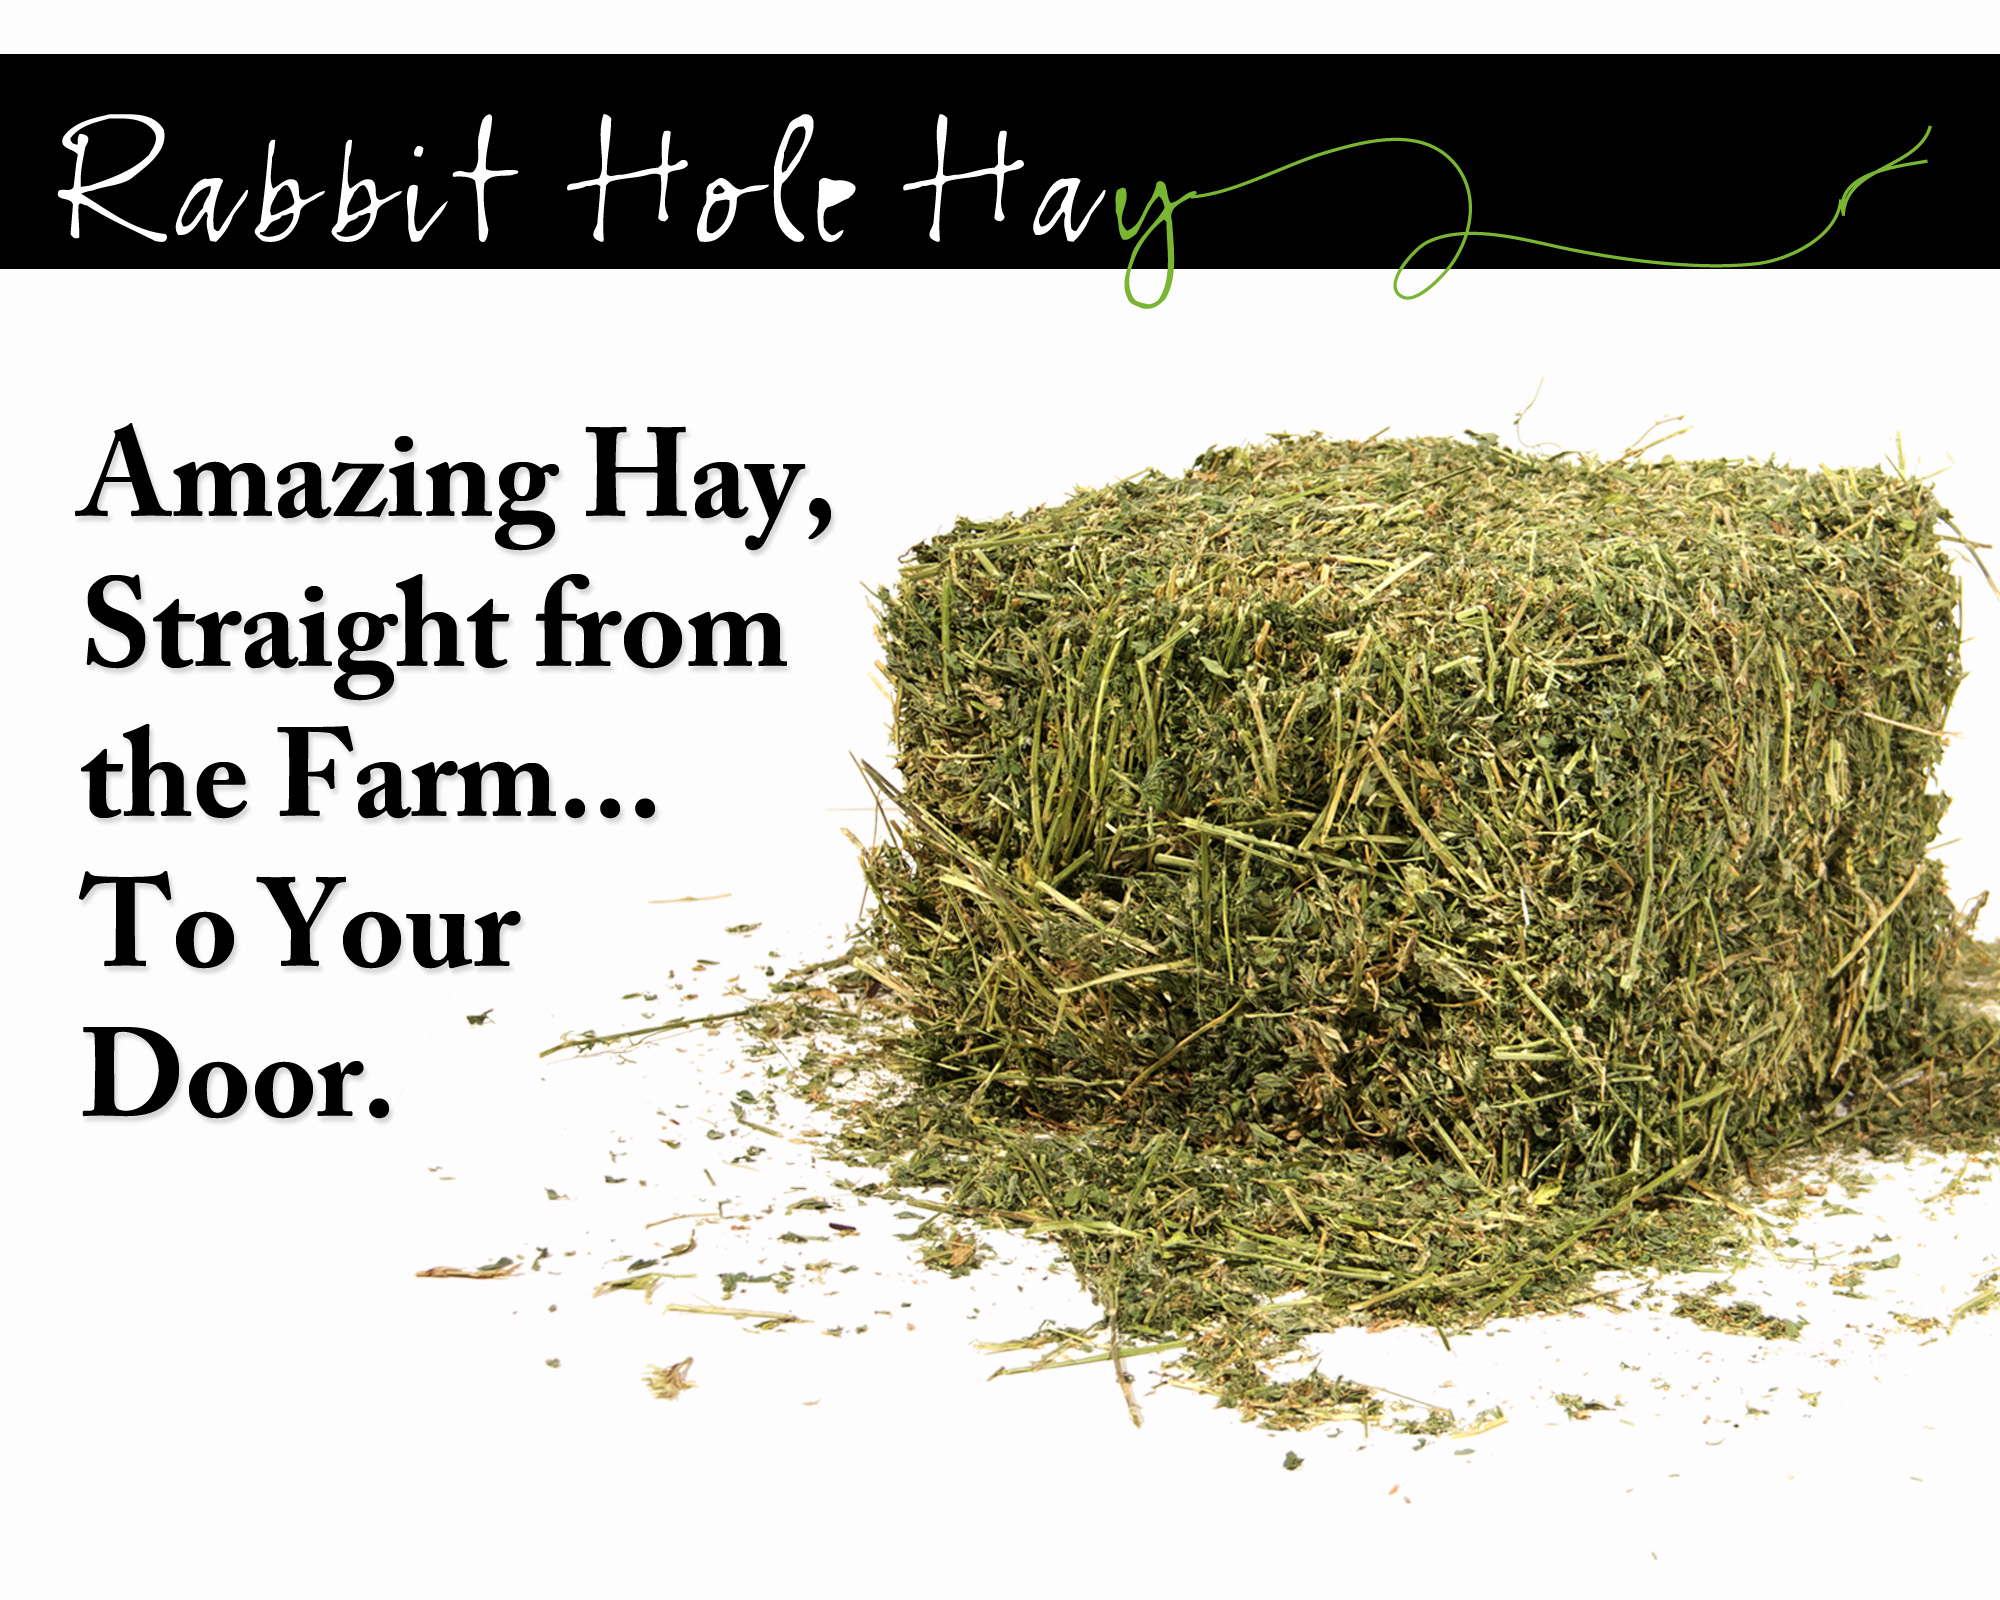 Rabbit Hole Hay Offers Simple Online Ordering Process for Farm Fresh Hay for Rabbits